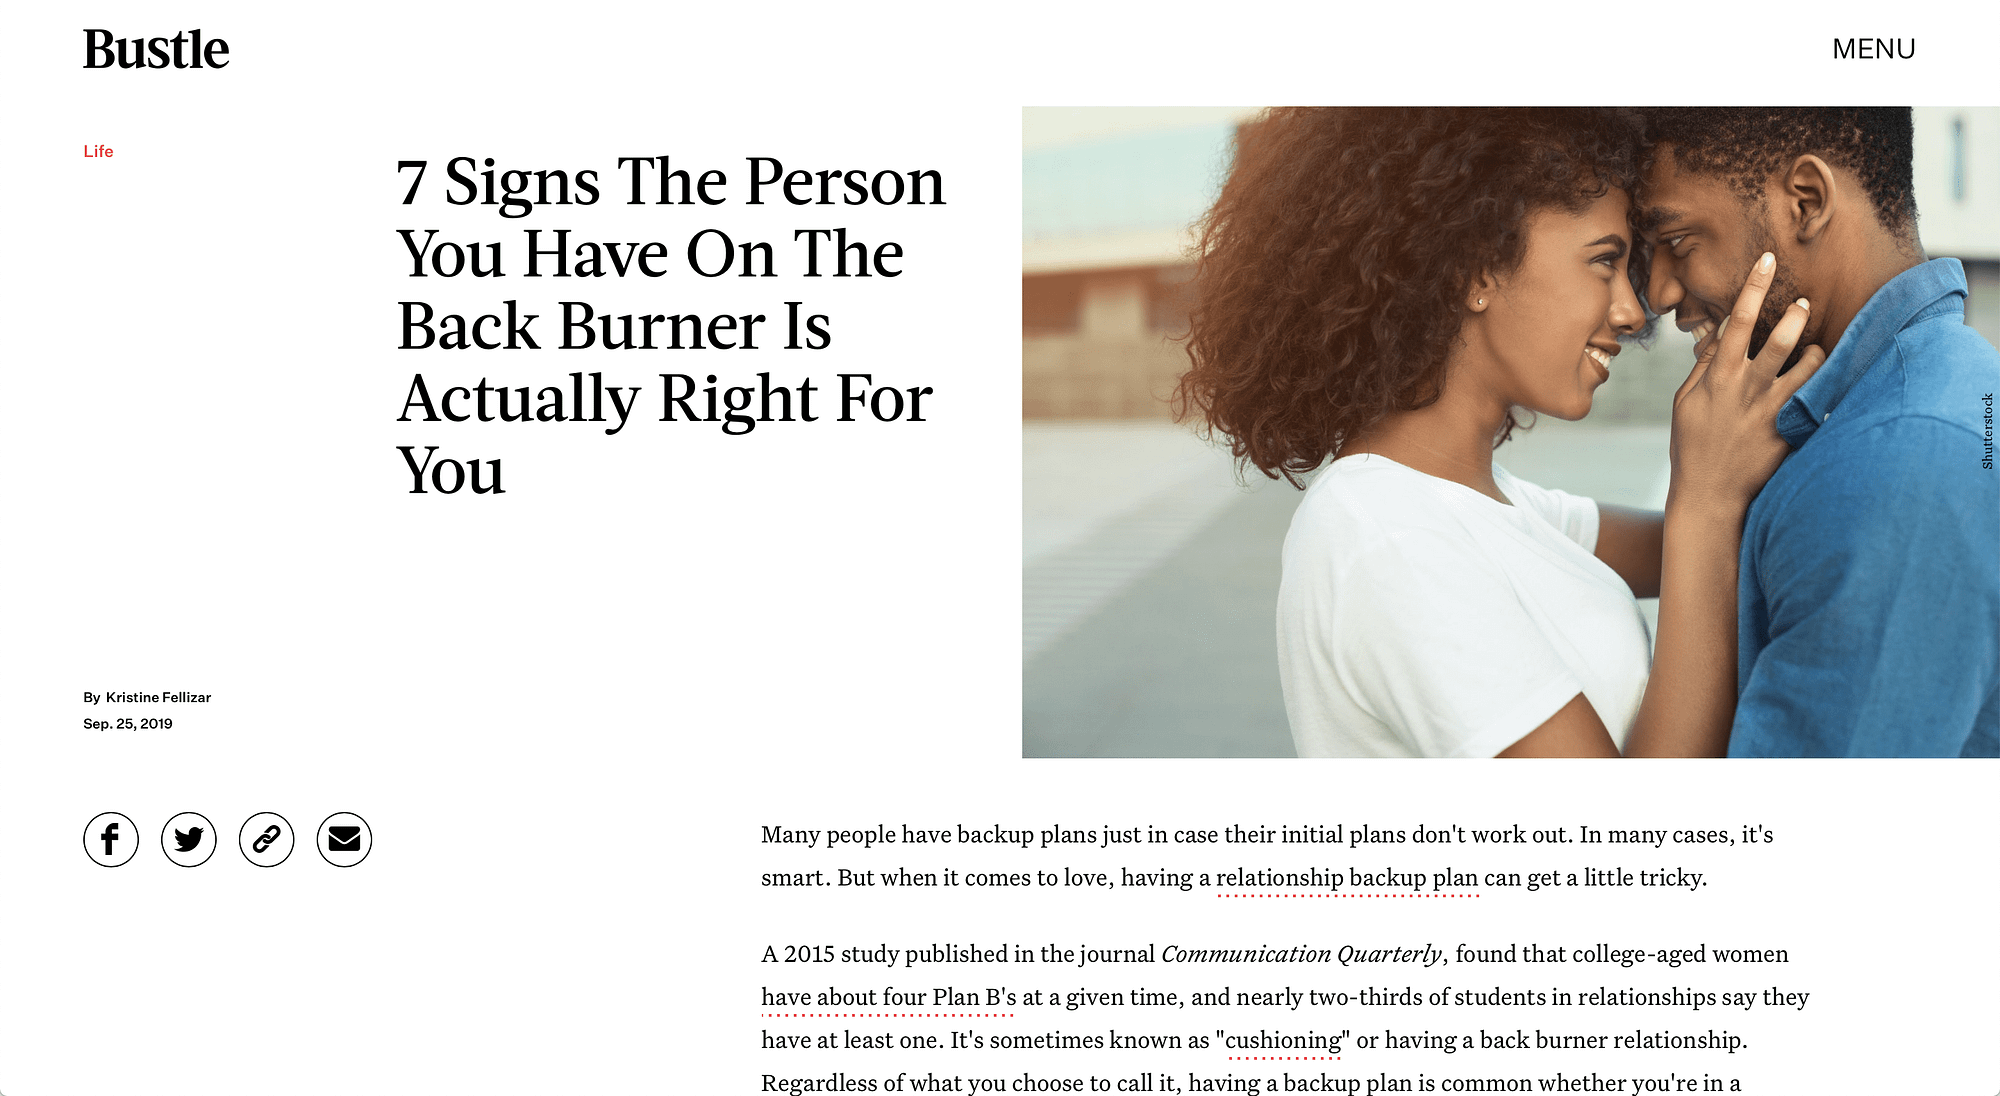 Signs The Person Is Right For You (Bustle) | LPTG Quote